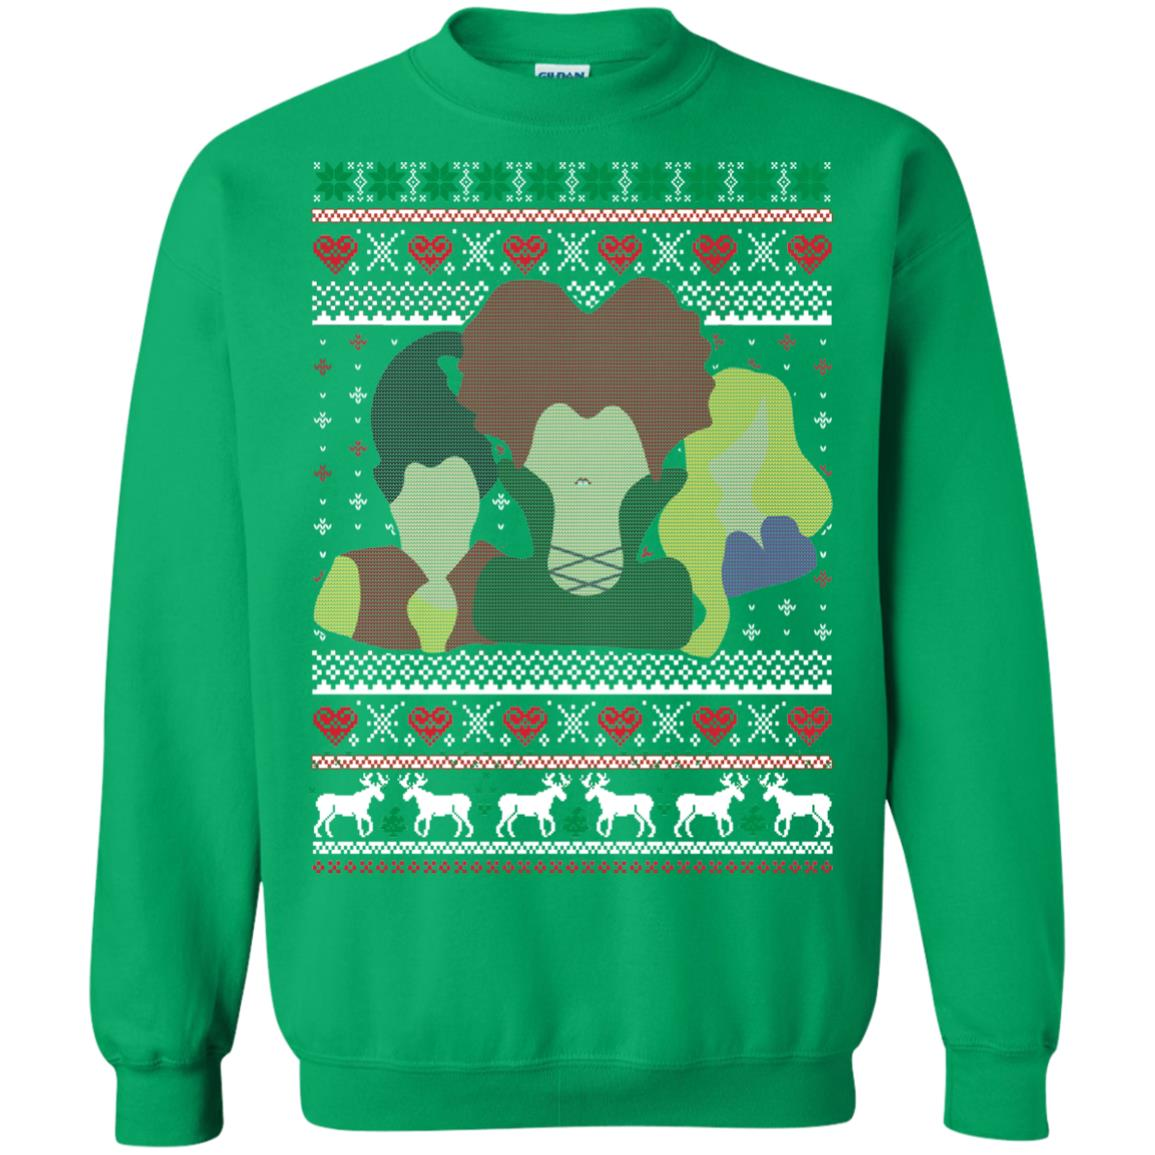 image 650px Hocus Pocus Ugly Christmas Sweater Shirt